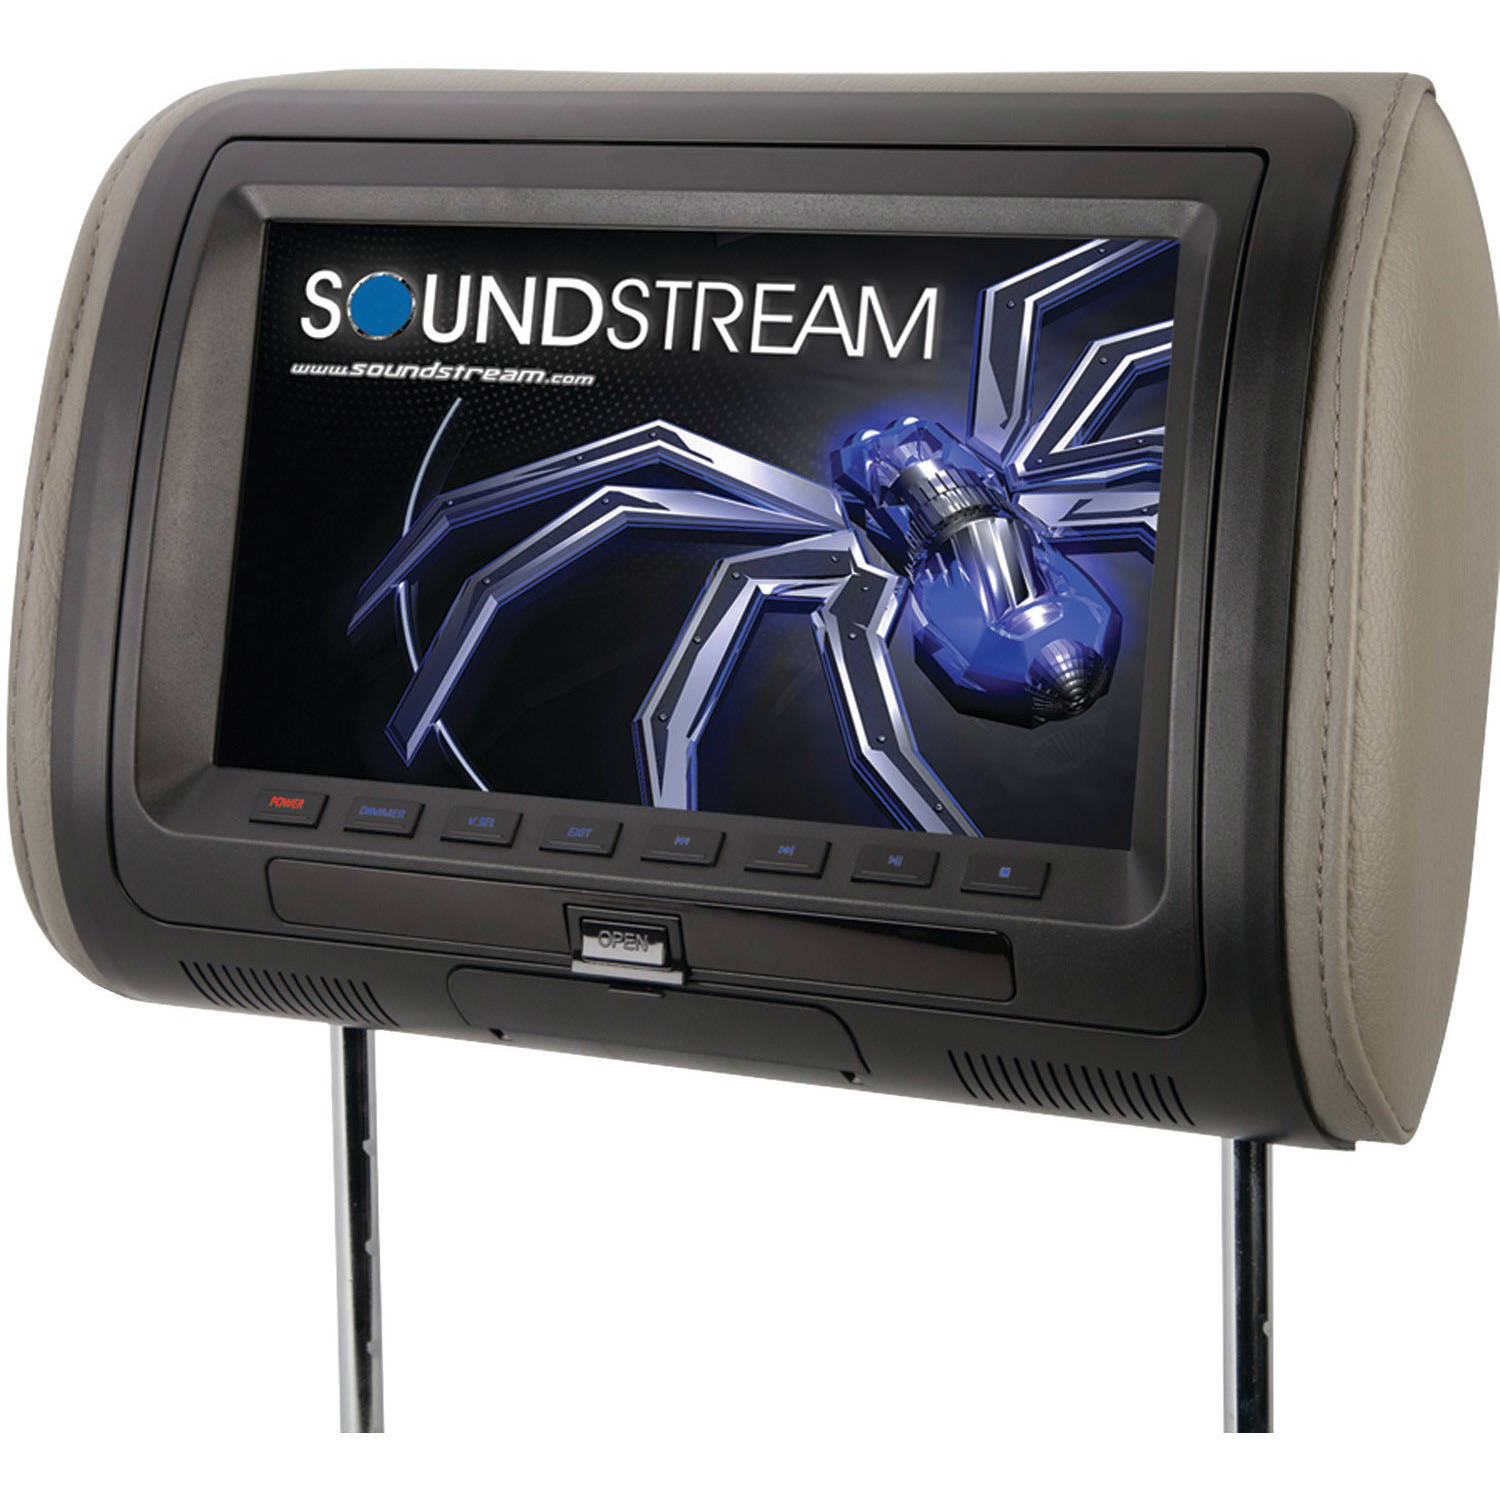 "Soundstream VHD-90CC 9"" Universal Headrest Monitor with DVD Player, IR and FM Transmitters and Interchangeable Skins"